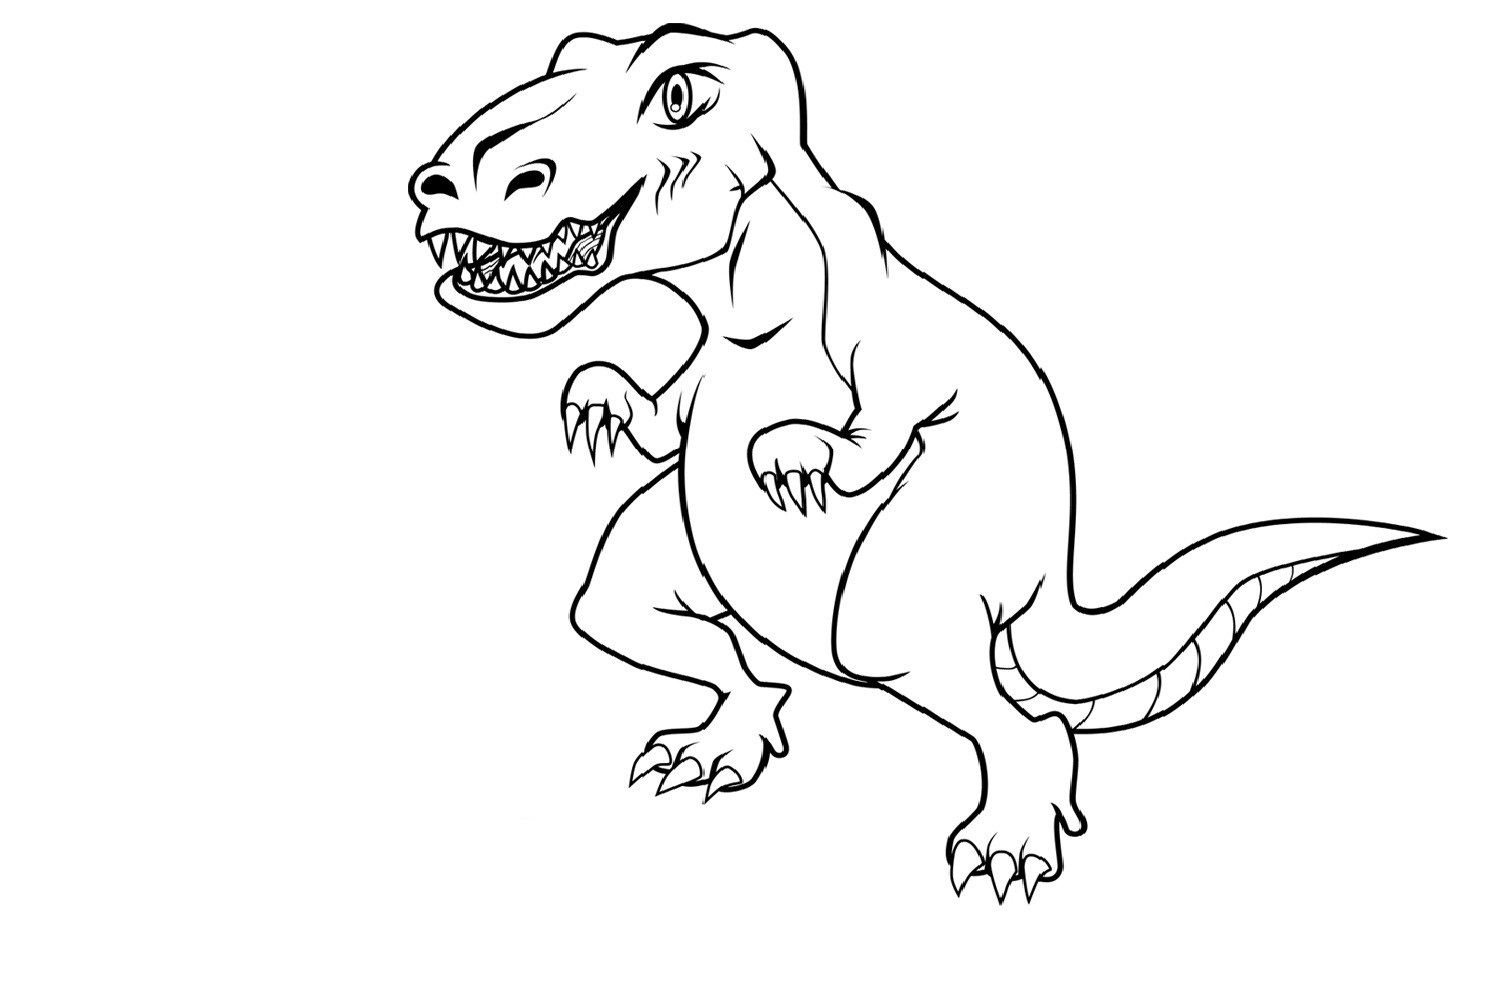 kids dinosaur coloring pages - photo#40